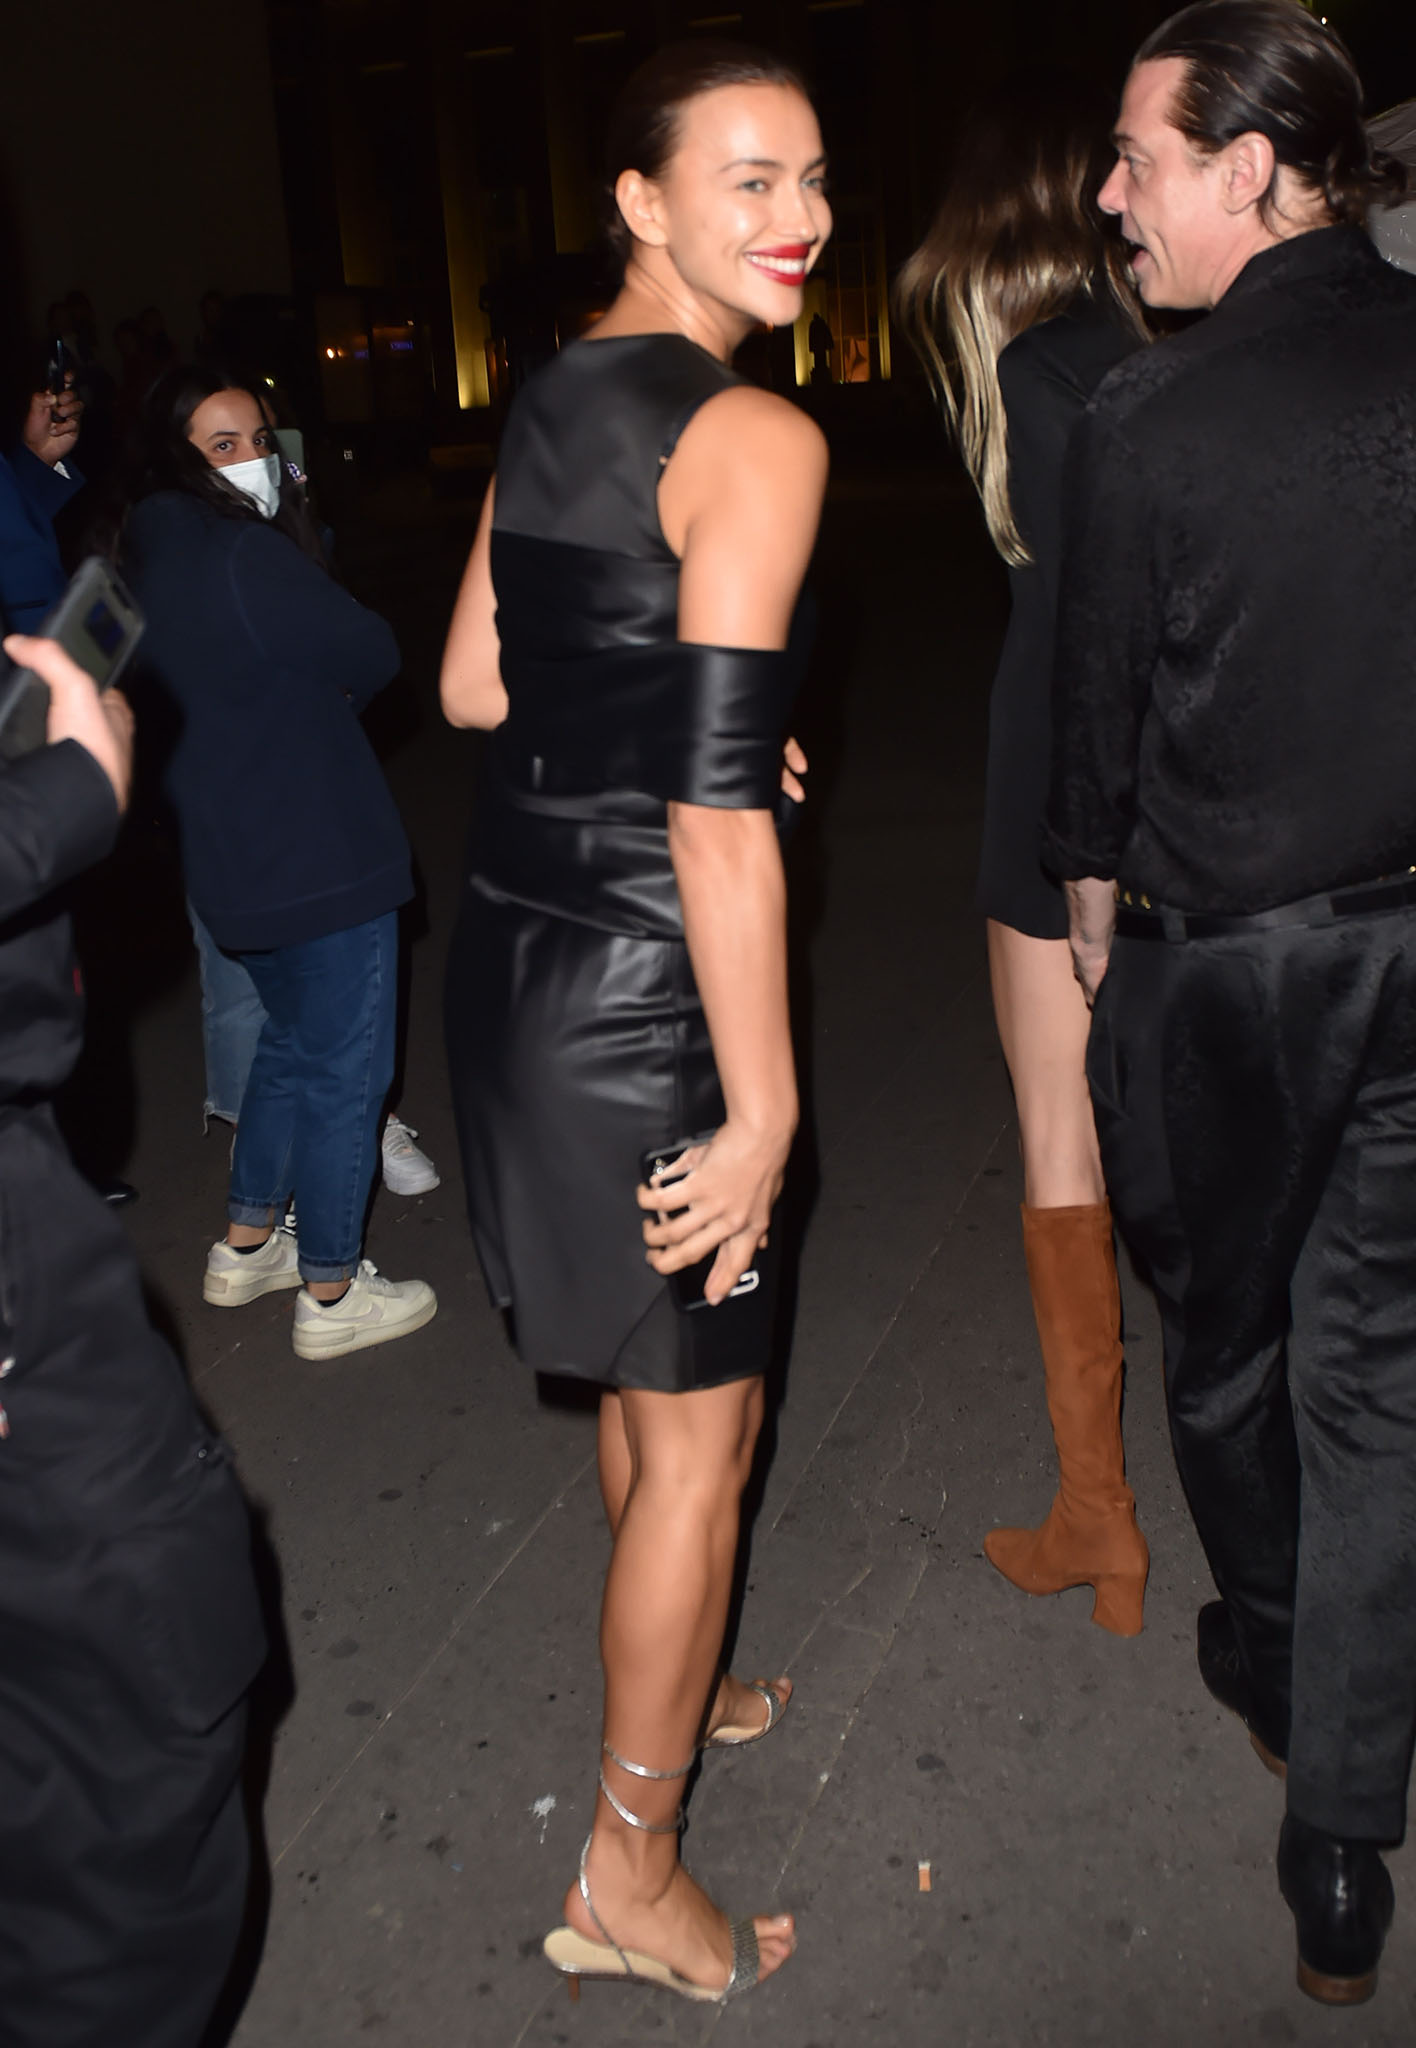 Irina Shayk wears an archival Helmut Lang leather dress with strappy silver sandals